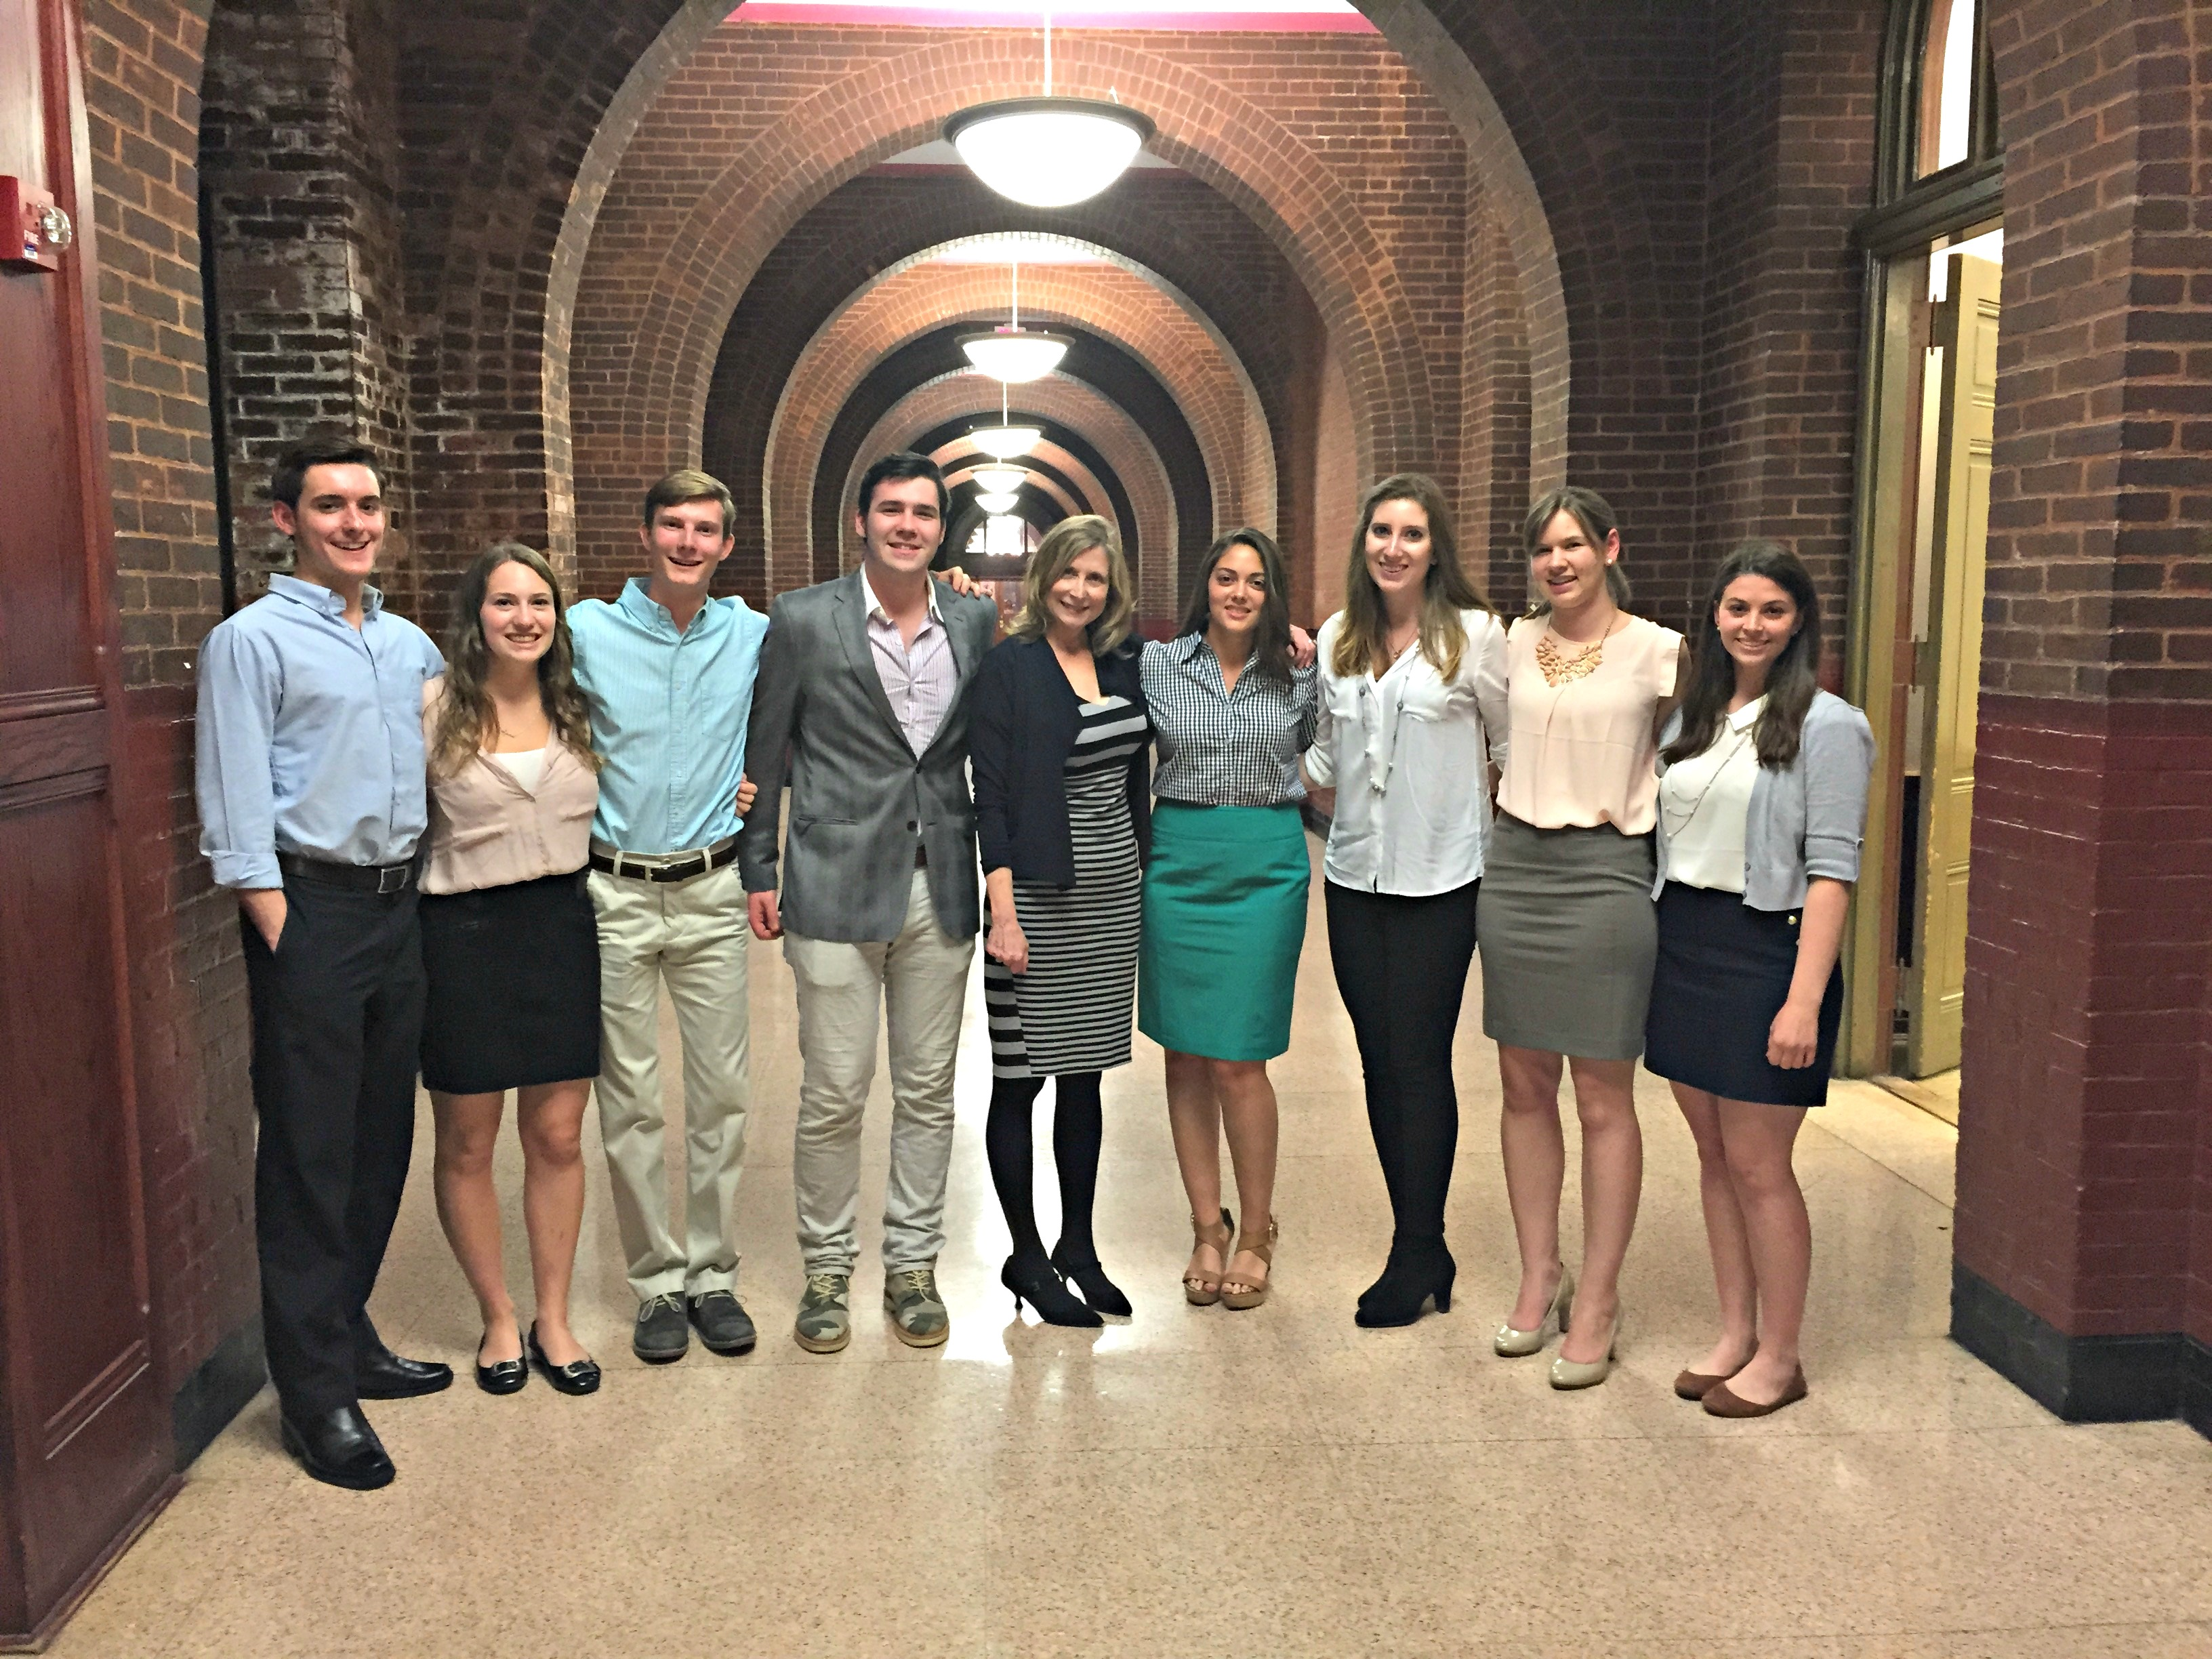 Georgetown CRs with Dr. Sommers after the controversial lecture. Image credit: Clare Boothe Luce Policy Institute